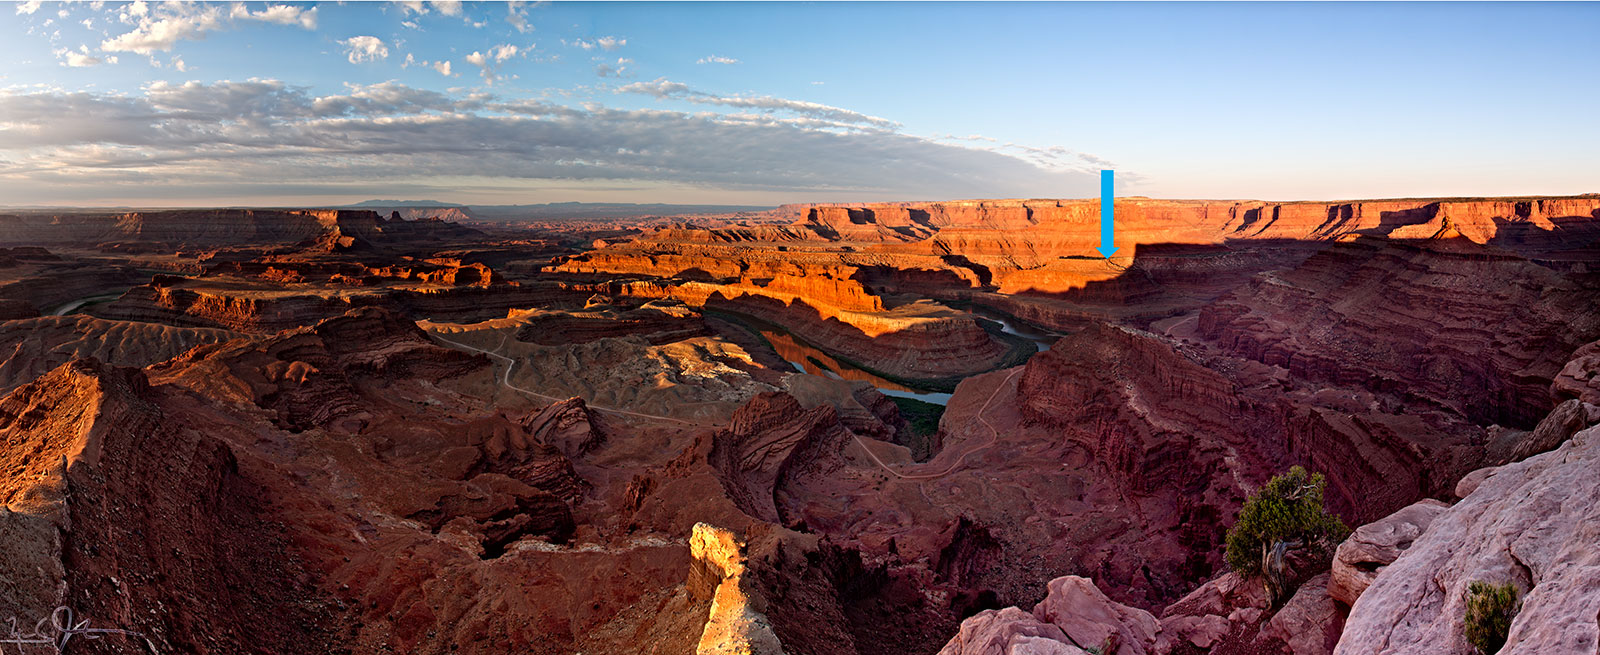 Dead Horse Point and the Gooseneck from the northeast, at the overlook at Dead Horse Point State Park. The point of view of the image below is indicated by the blue arrow.